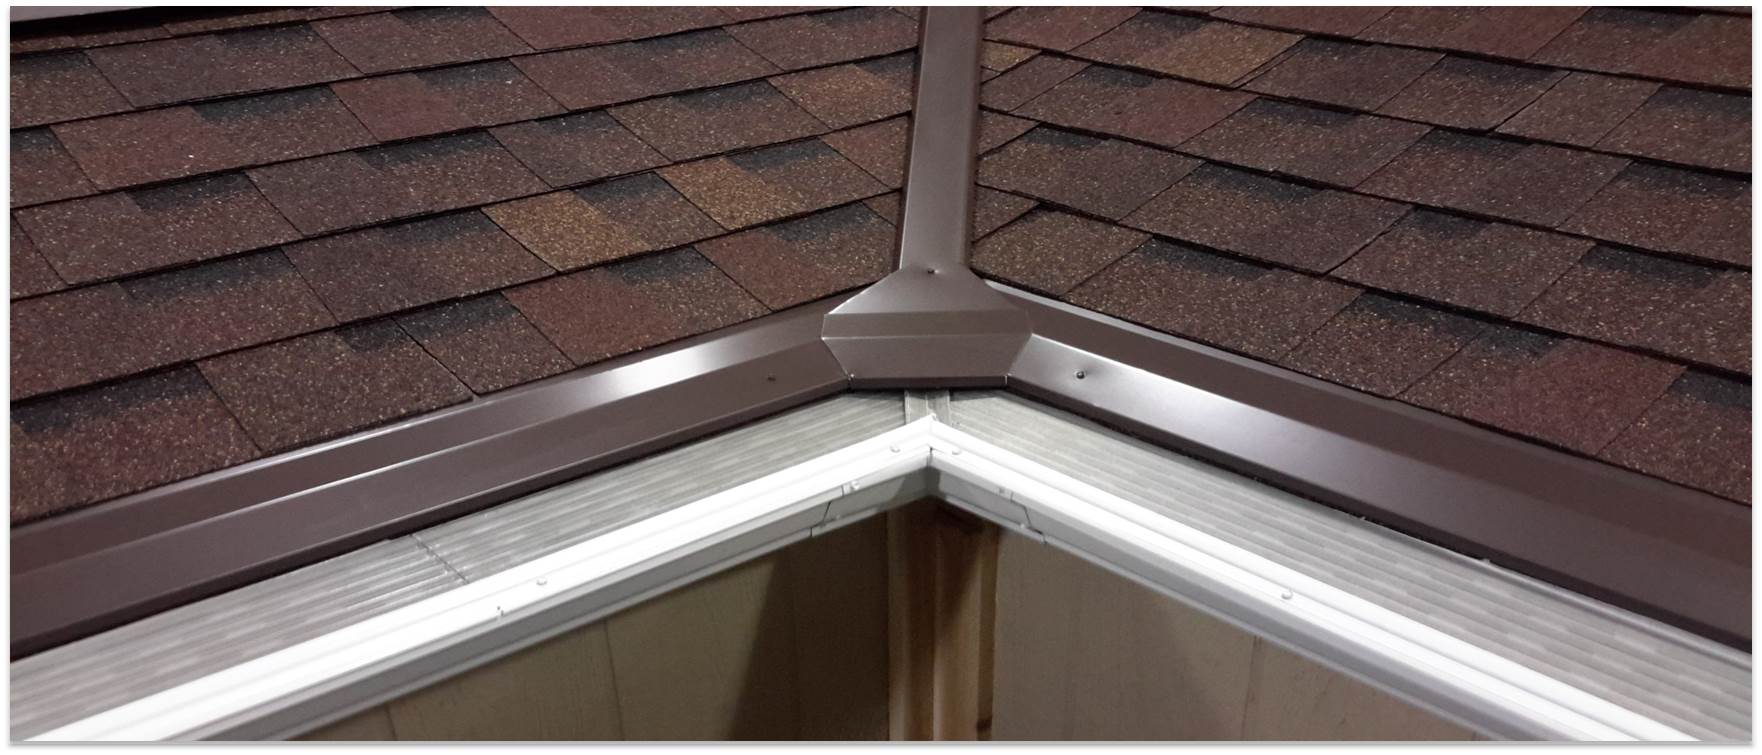 Ice Melt Systems Michigan Gutters Inc